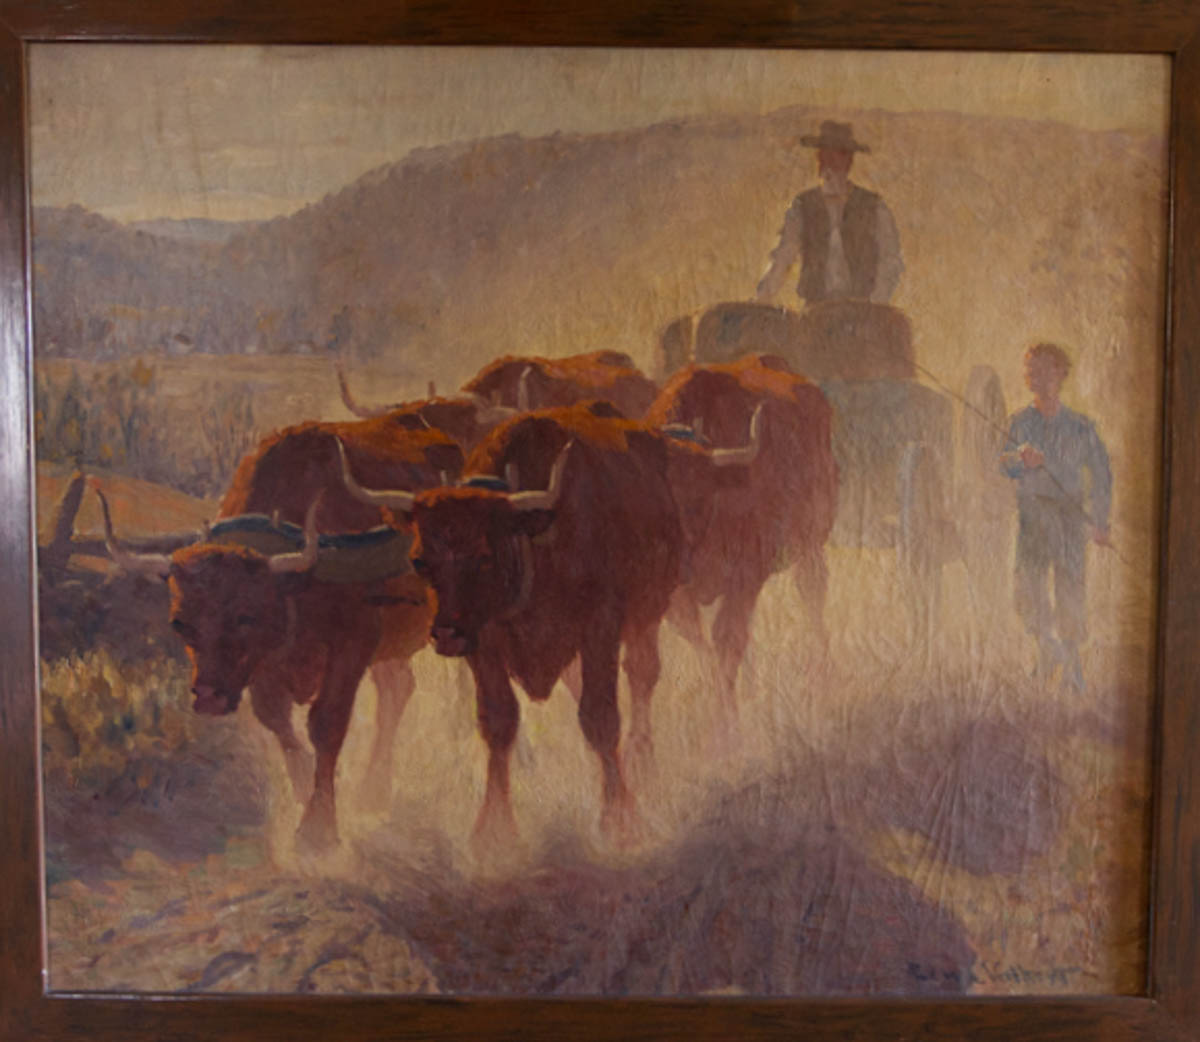 Untitled [Oxen and two drivers on a dusty road]